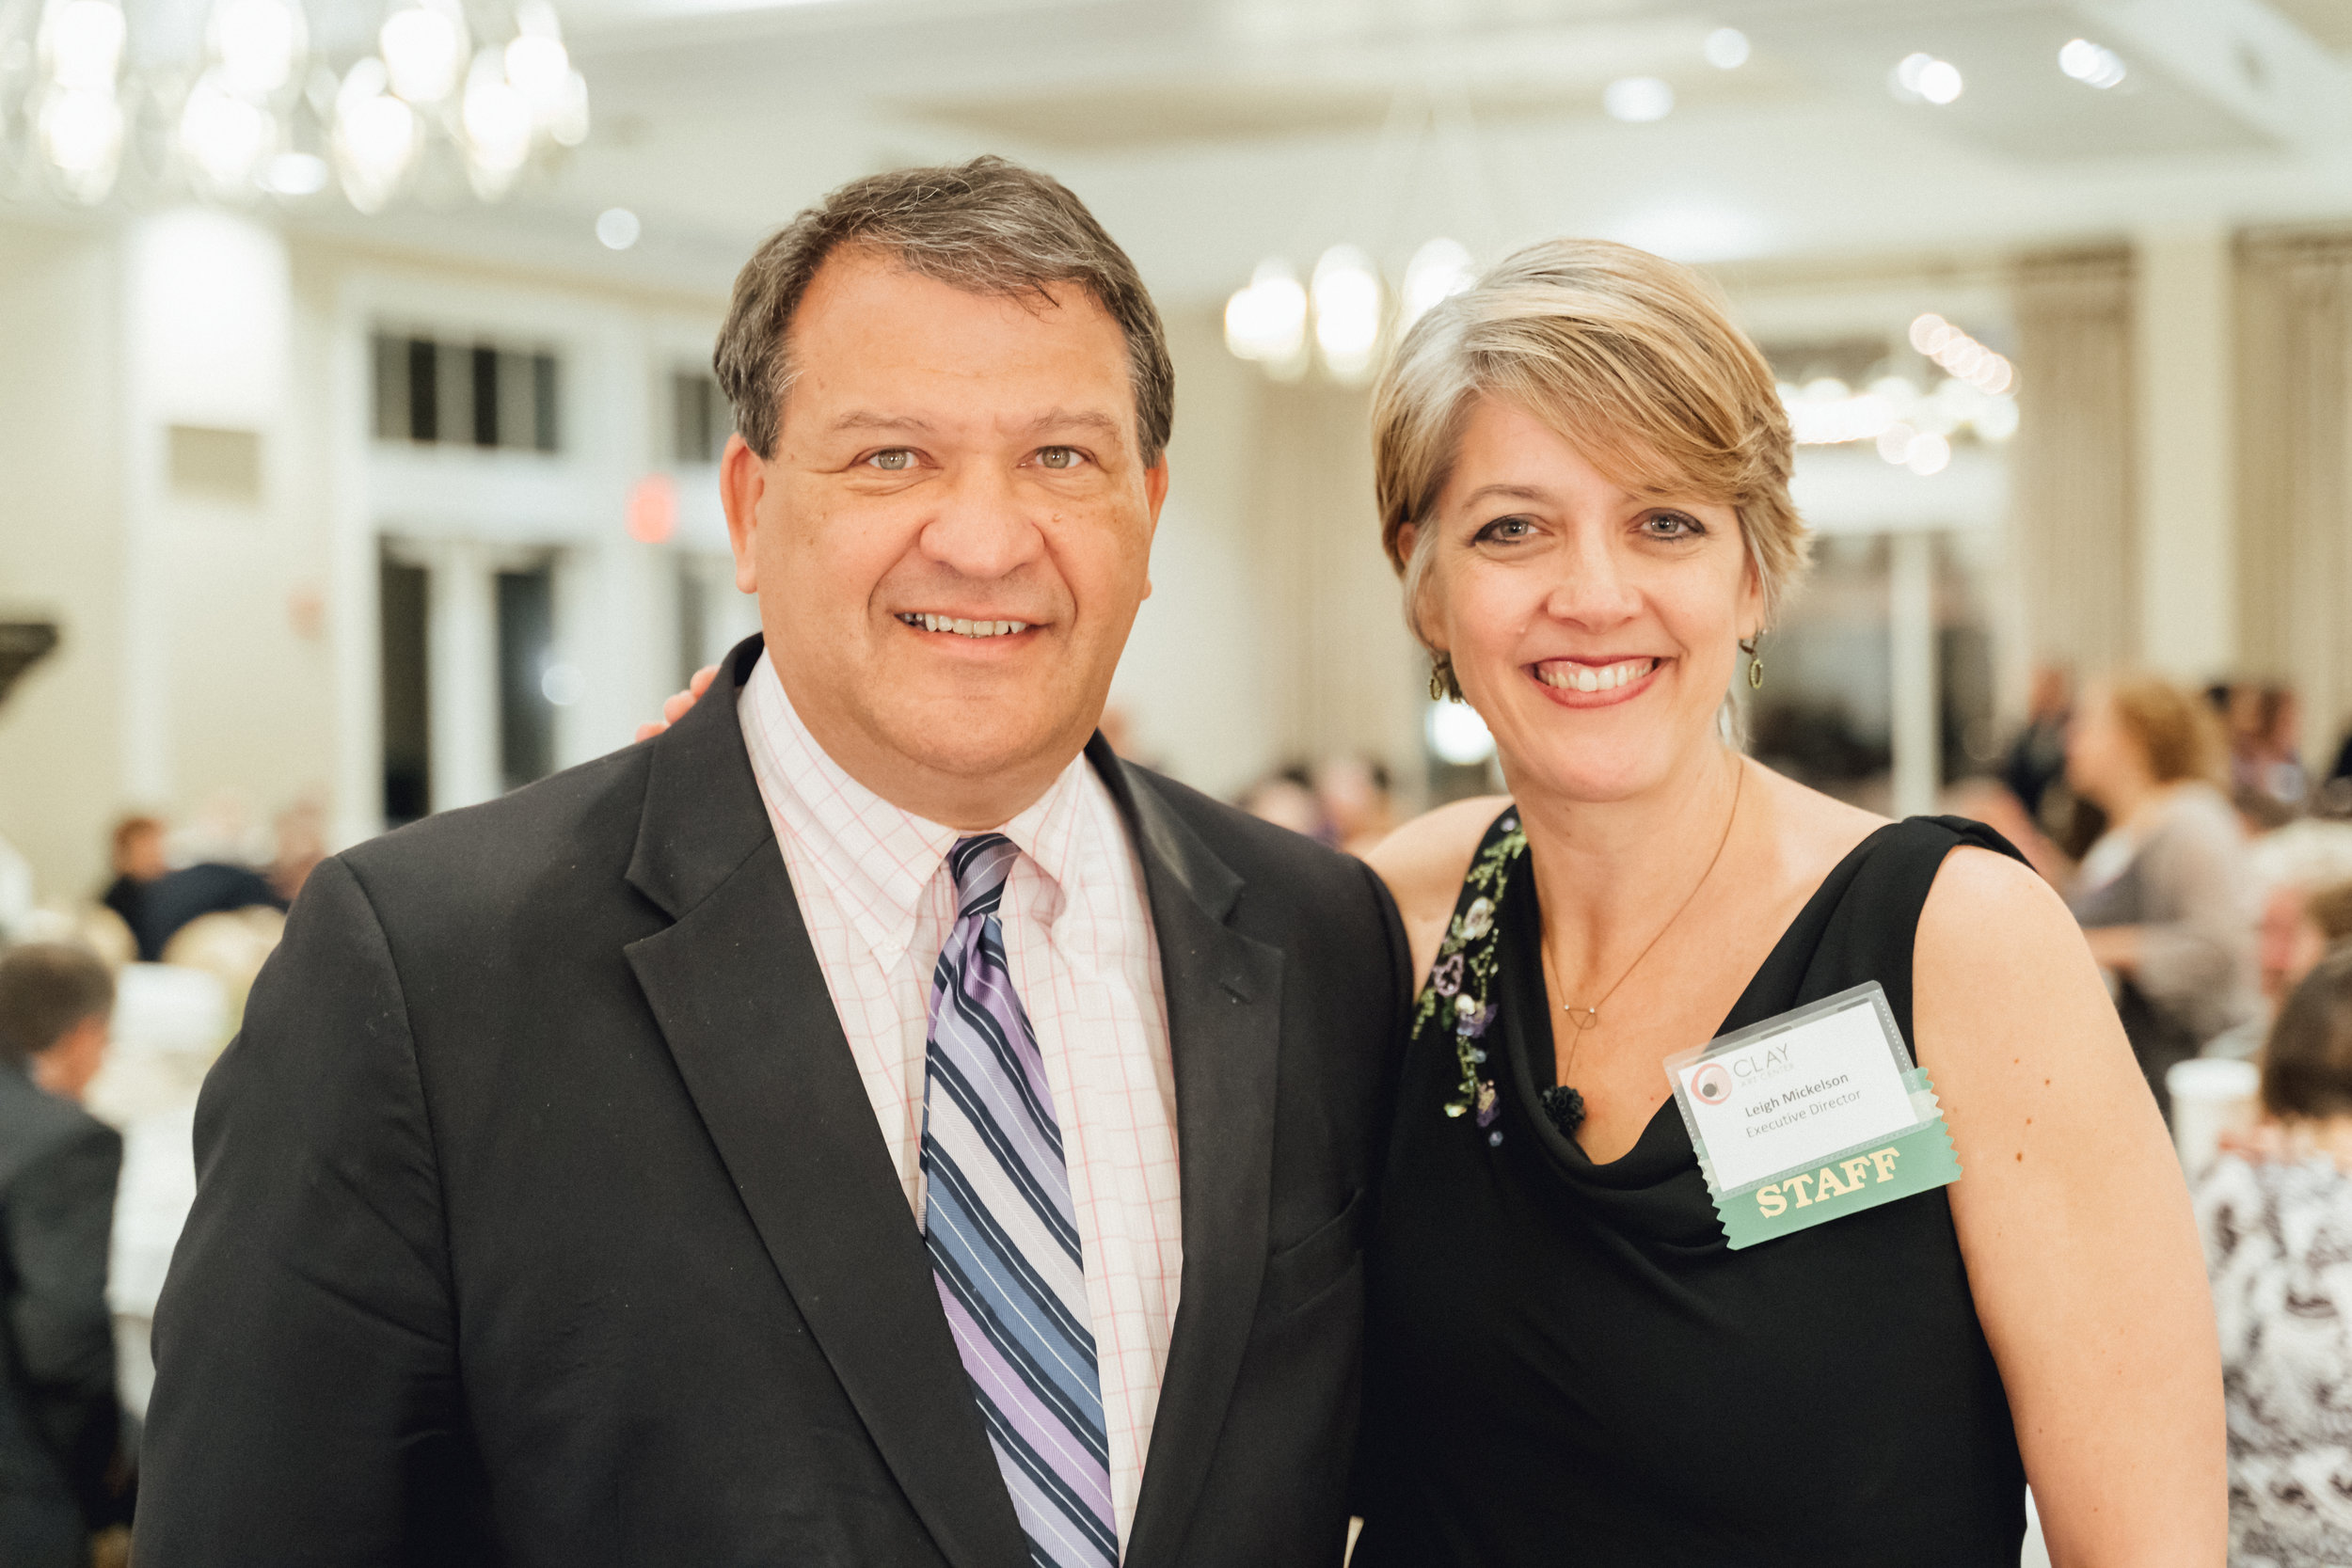 George Latimer, Westchester County Executive & Leigh Taylor Mickelson, CAC Executive Director